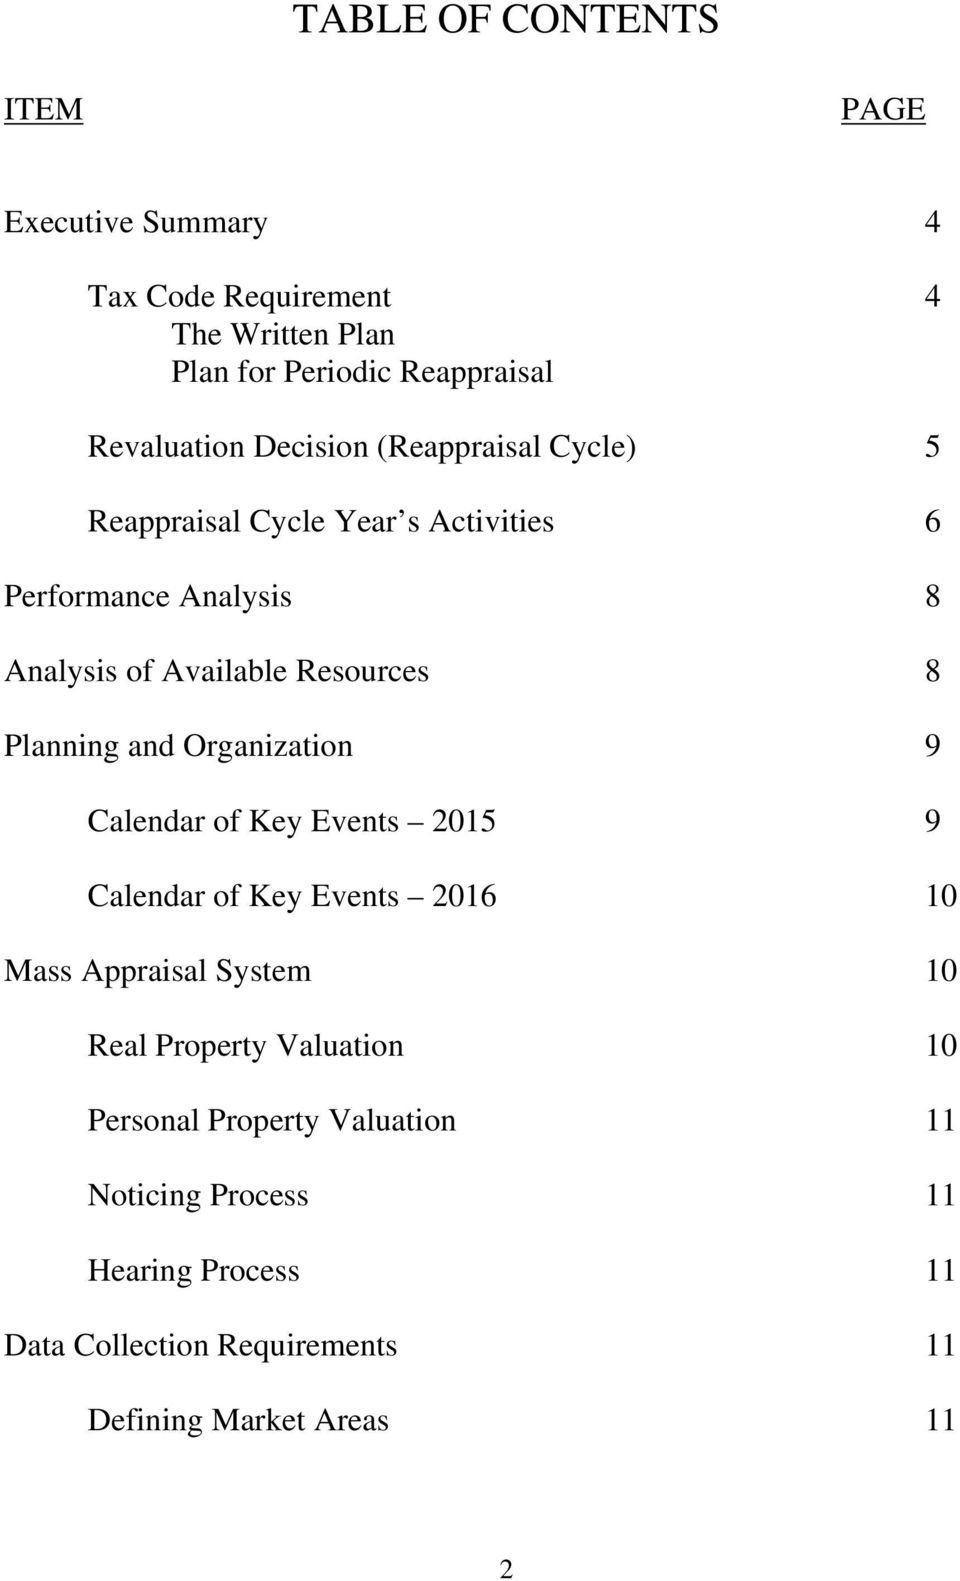 Planning and Organization 9 Calendar of Key Events 2015 9 Calendar of Key Events 2016 10 Mass Appraisal System 10 Real Property